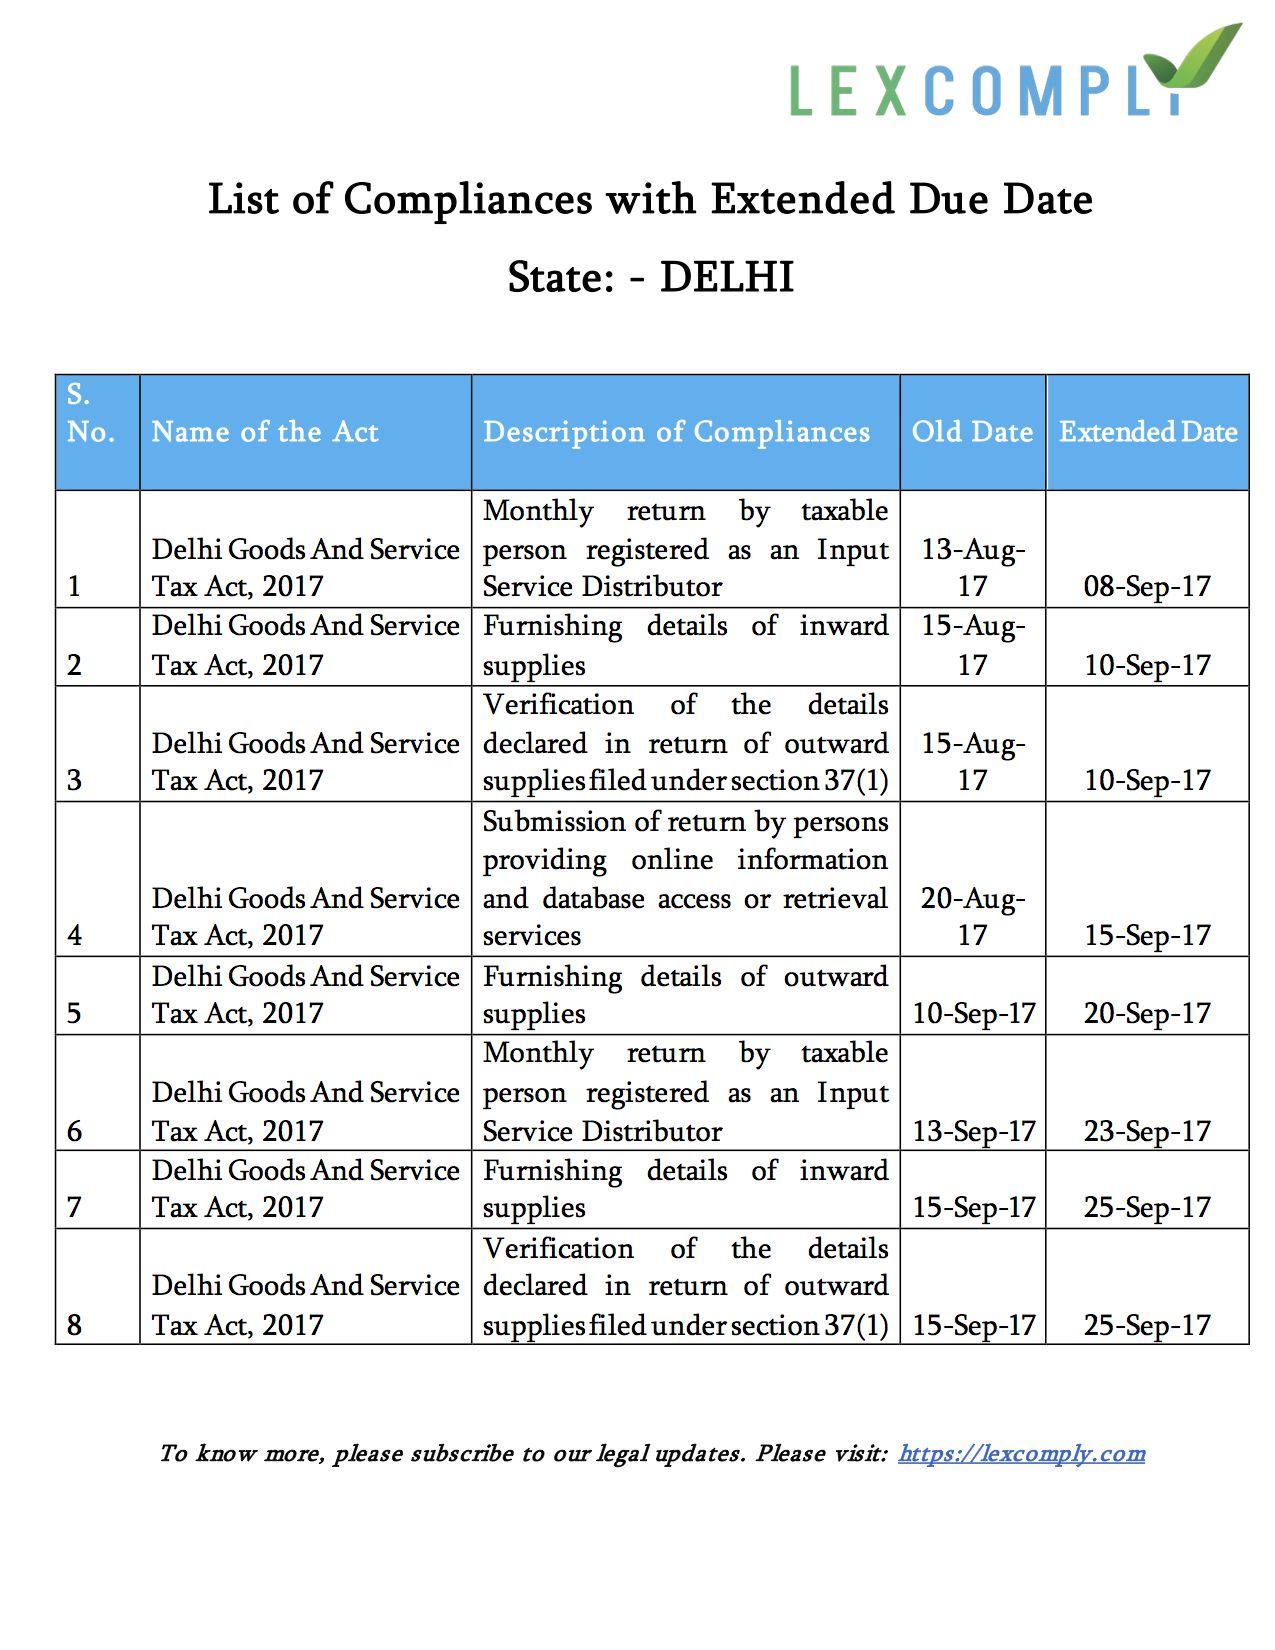 List of Compliance with Extended Due Date under Delhi Goods and Service Tax  (GST)